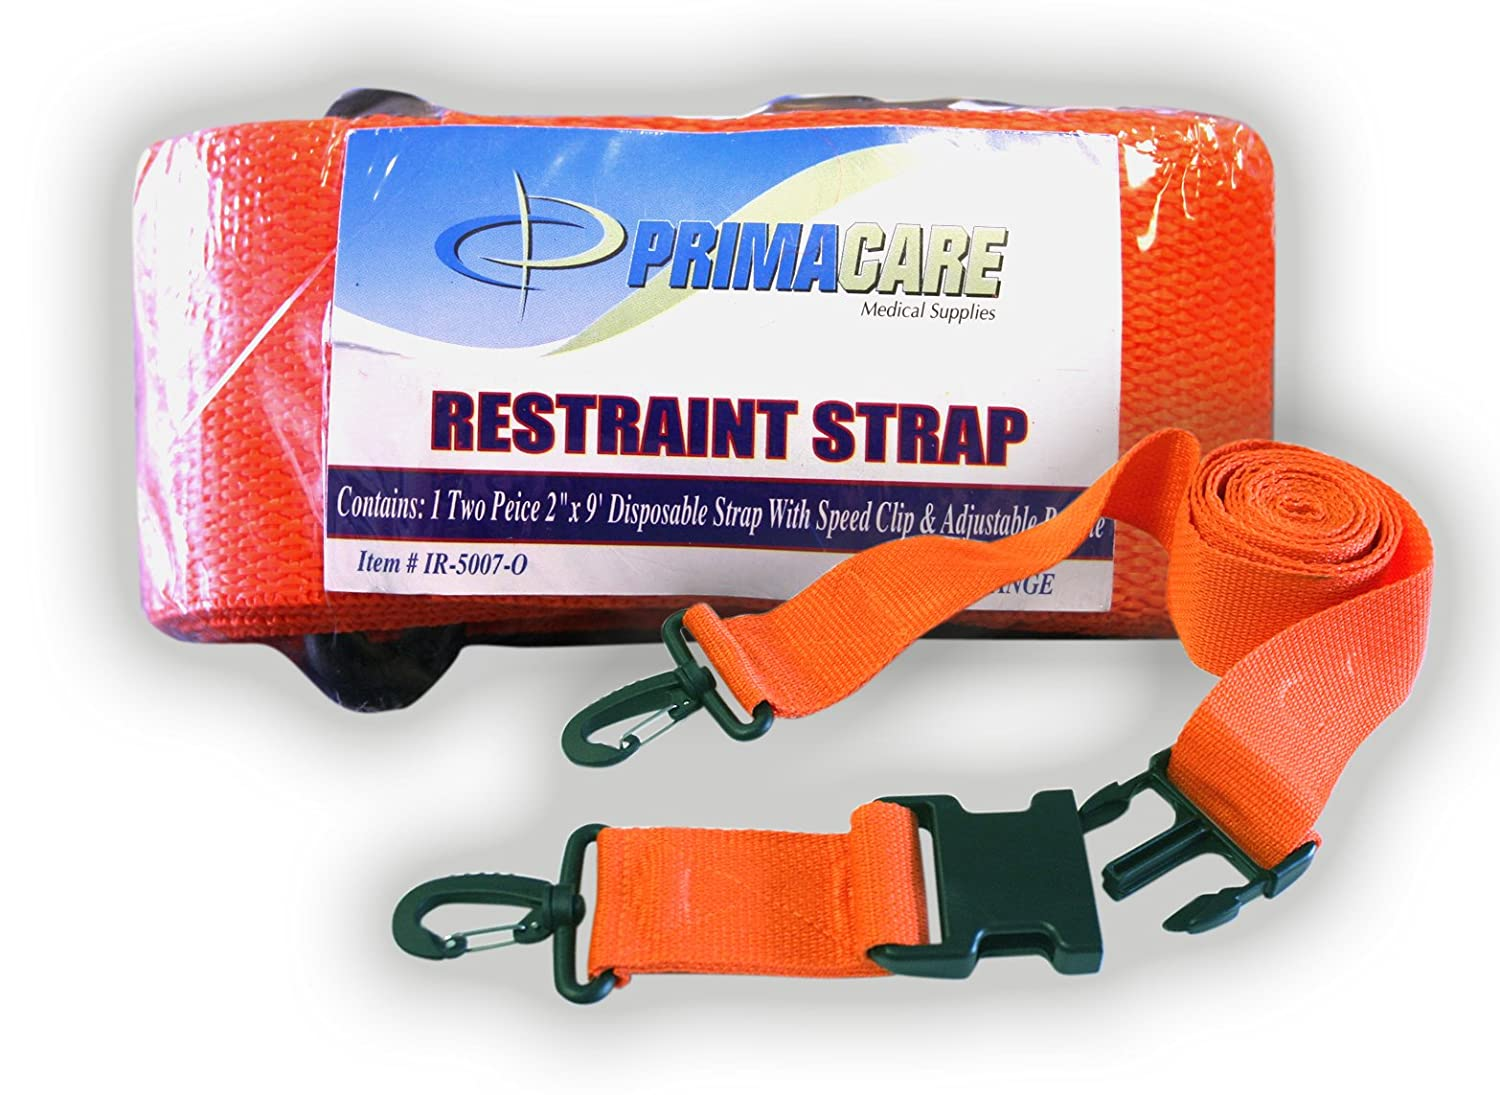 Primacare IR-5007 2 Piece Restraint Strap with Speed Clip 9 Length 9/' Length